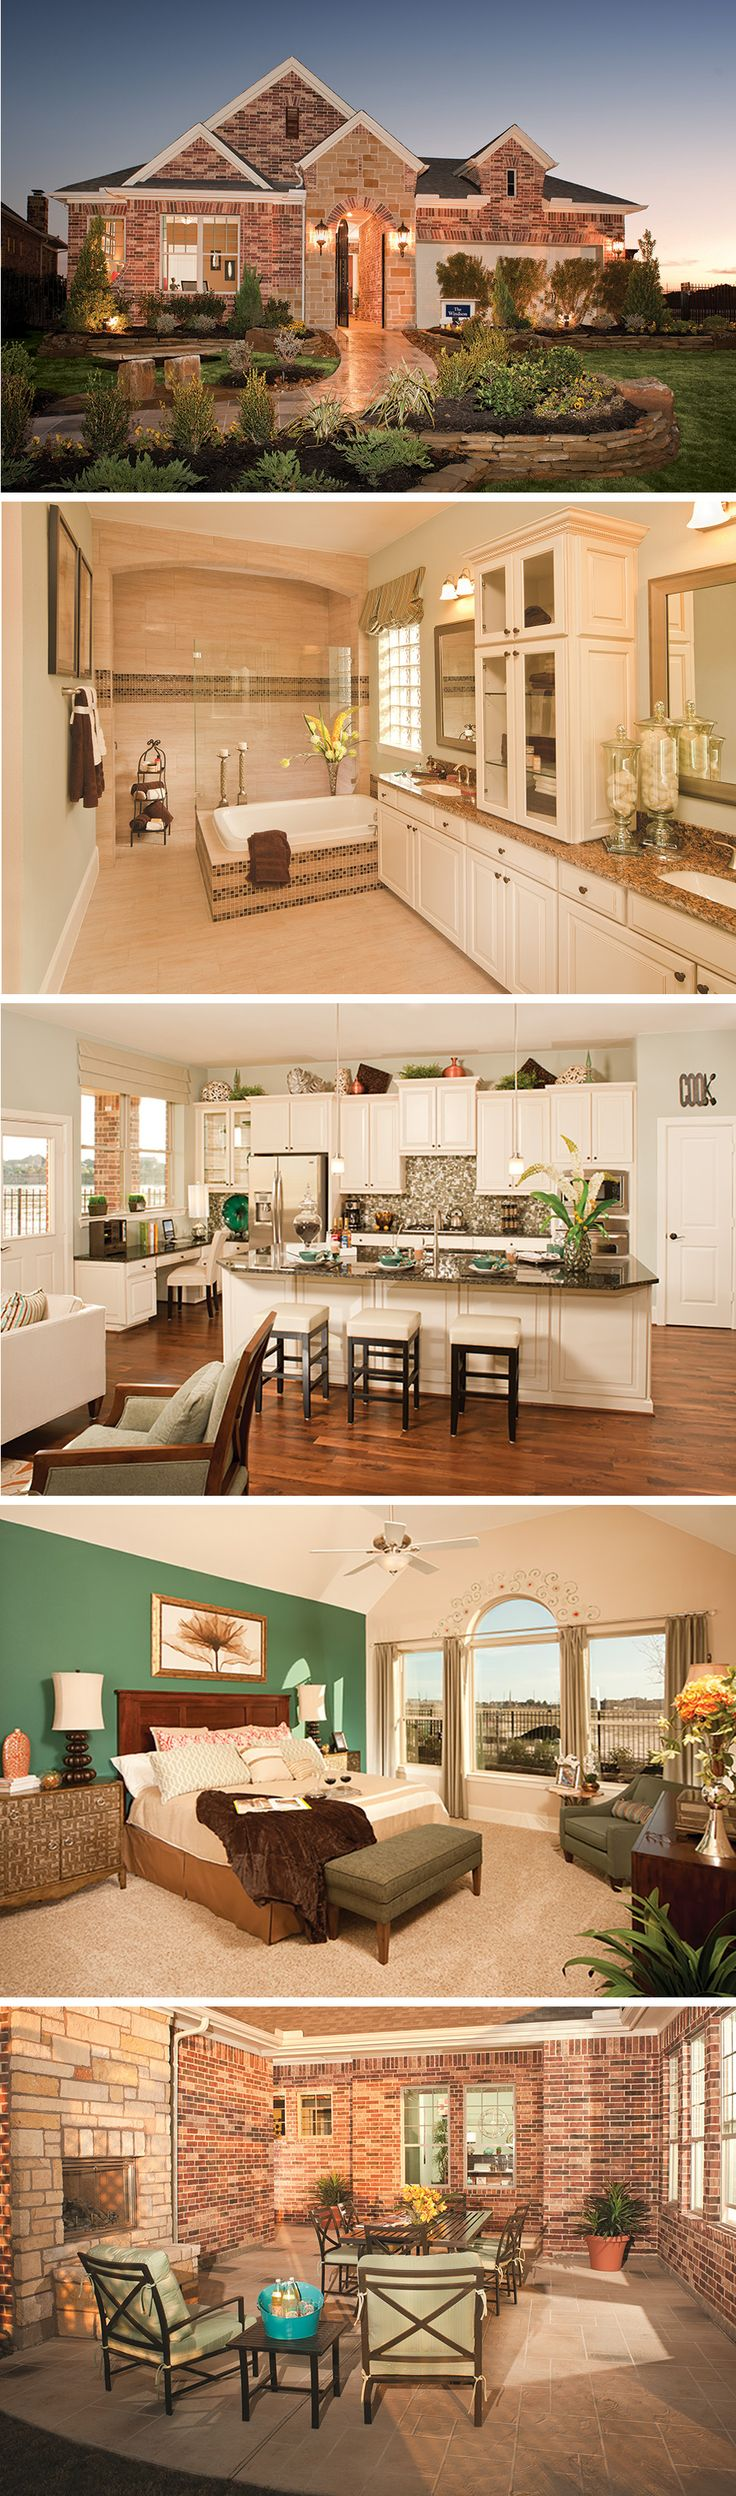 3 bedroom house interior design  best dream homeideasuvacation images on pinterest  home ideas